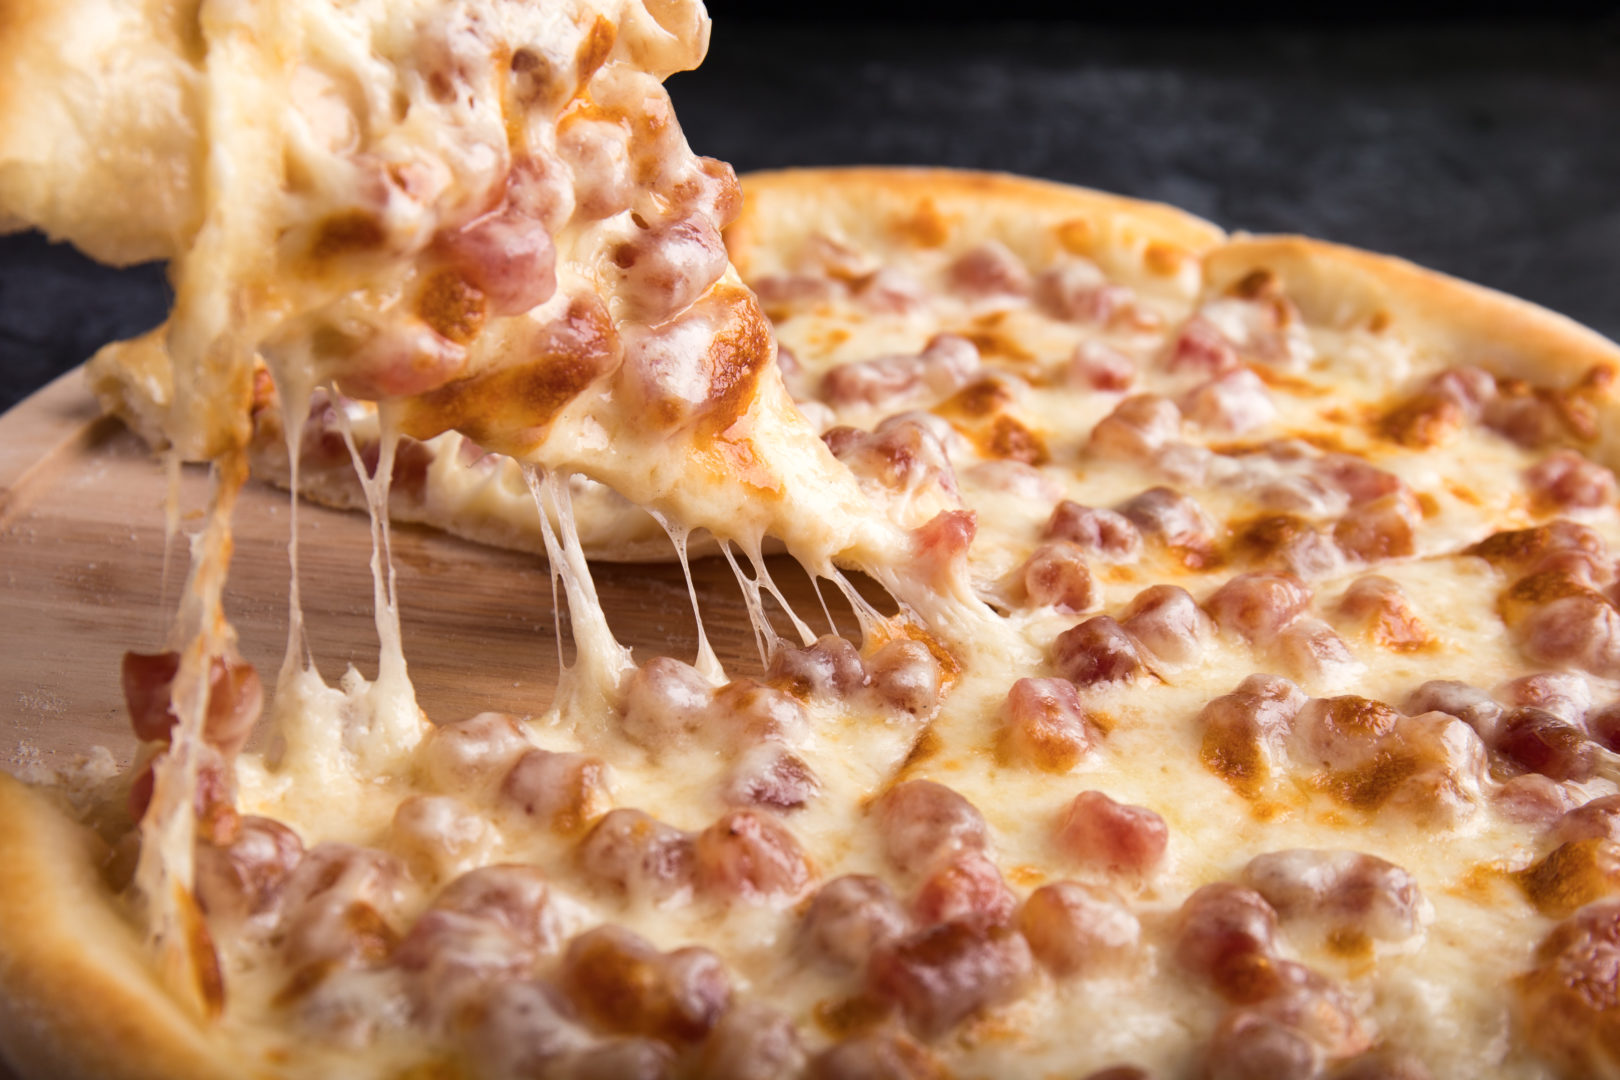 Close up of someone pulling slice from whole pizza